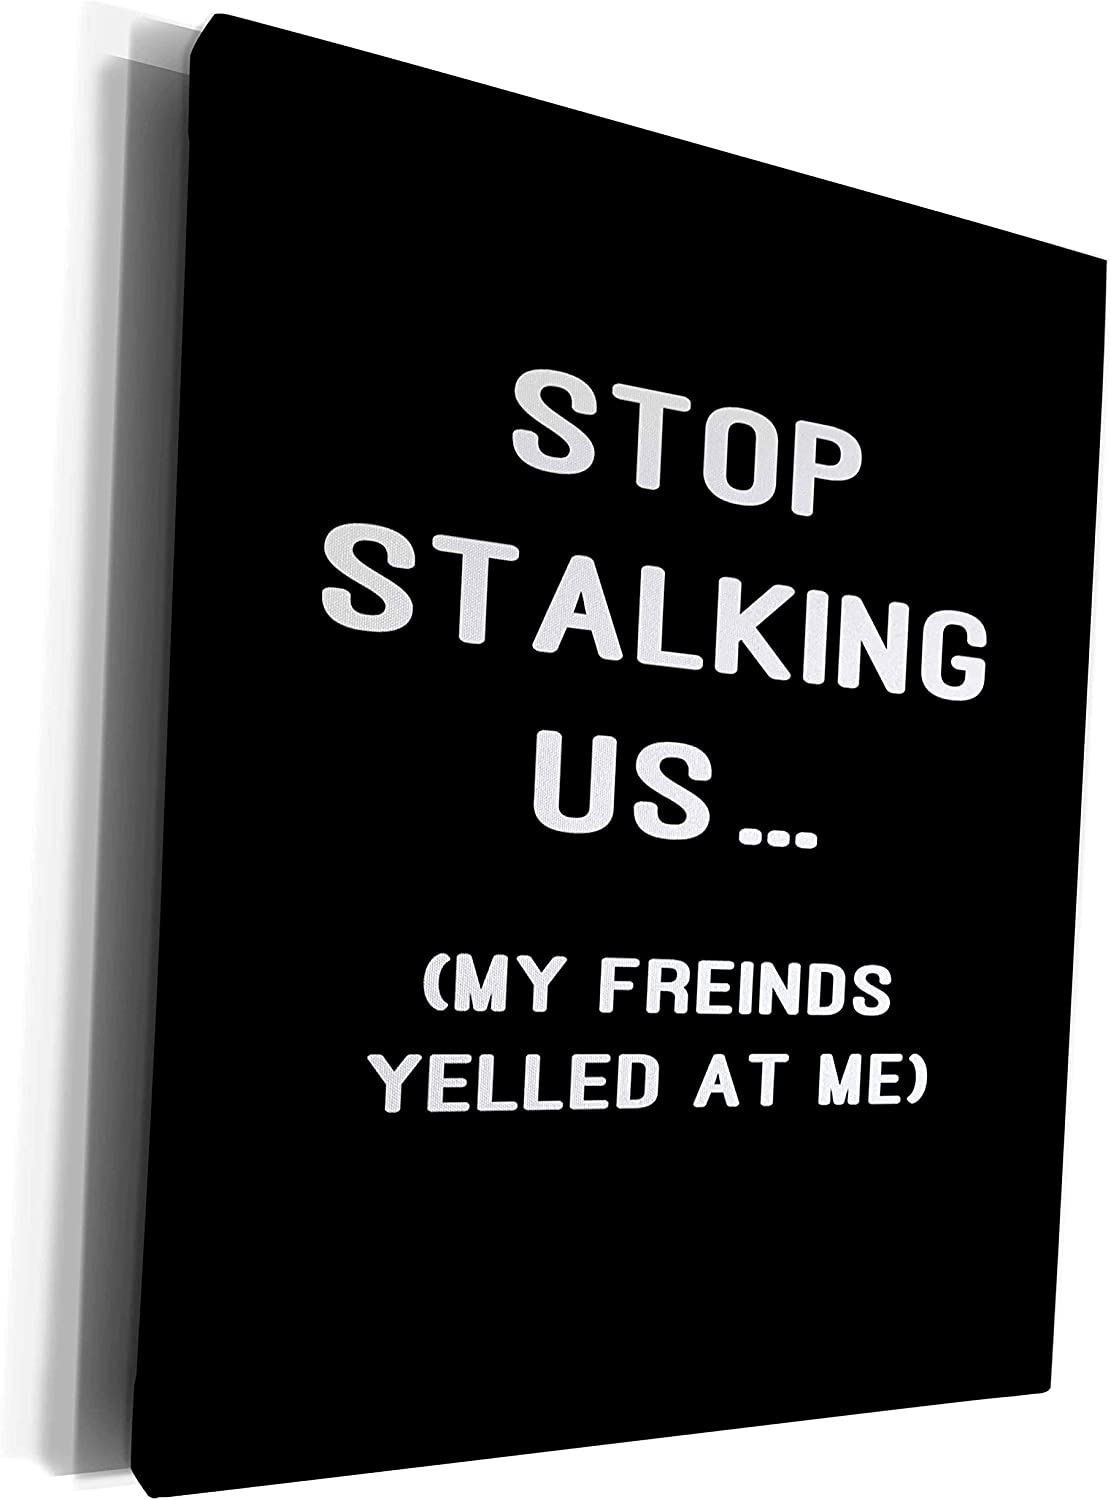 3dRose AMansMall Funny Quotes - Stop Stalking US, My Friends Yelled At Me, Quote, 3drsmm, Museum Grade Canvas Wrap (cw_292728_1)